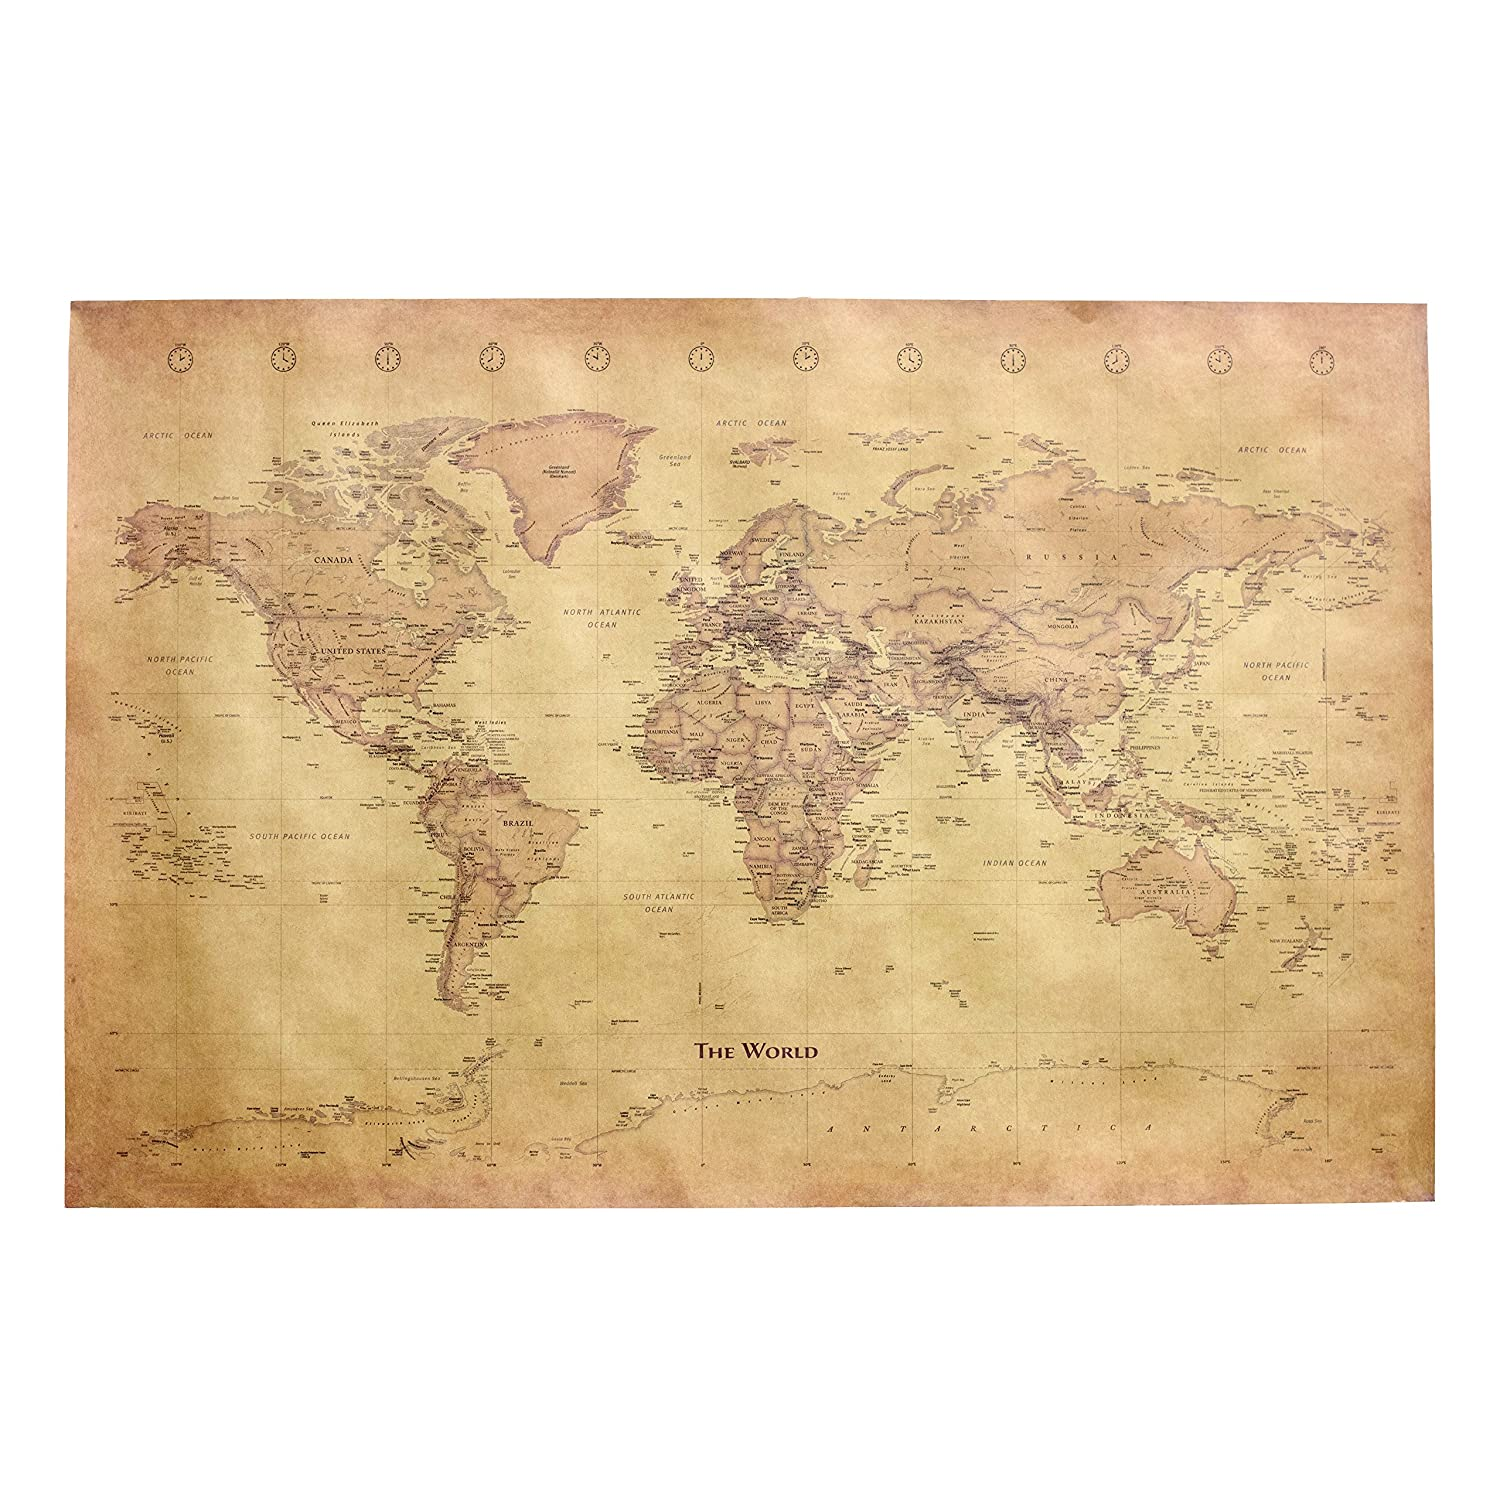 Decorative World Map Poster.Amazon Com Home Office Wall Decorative Poster Vintage Style